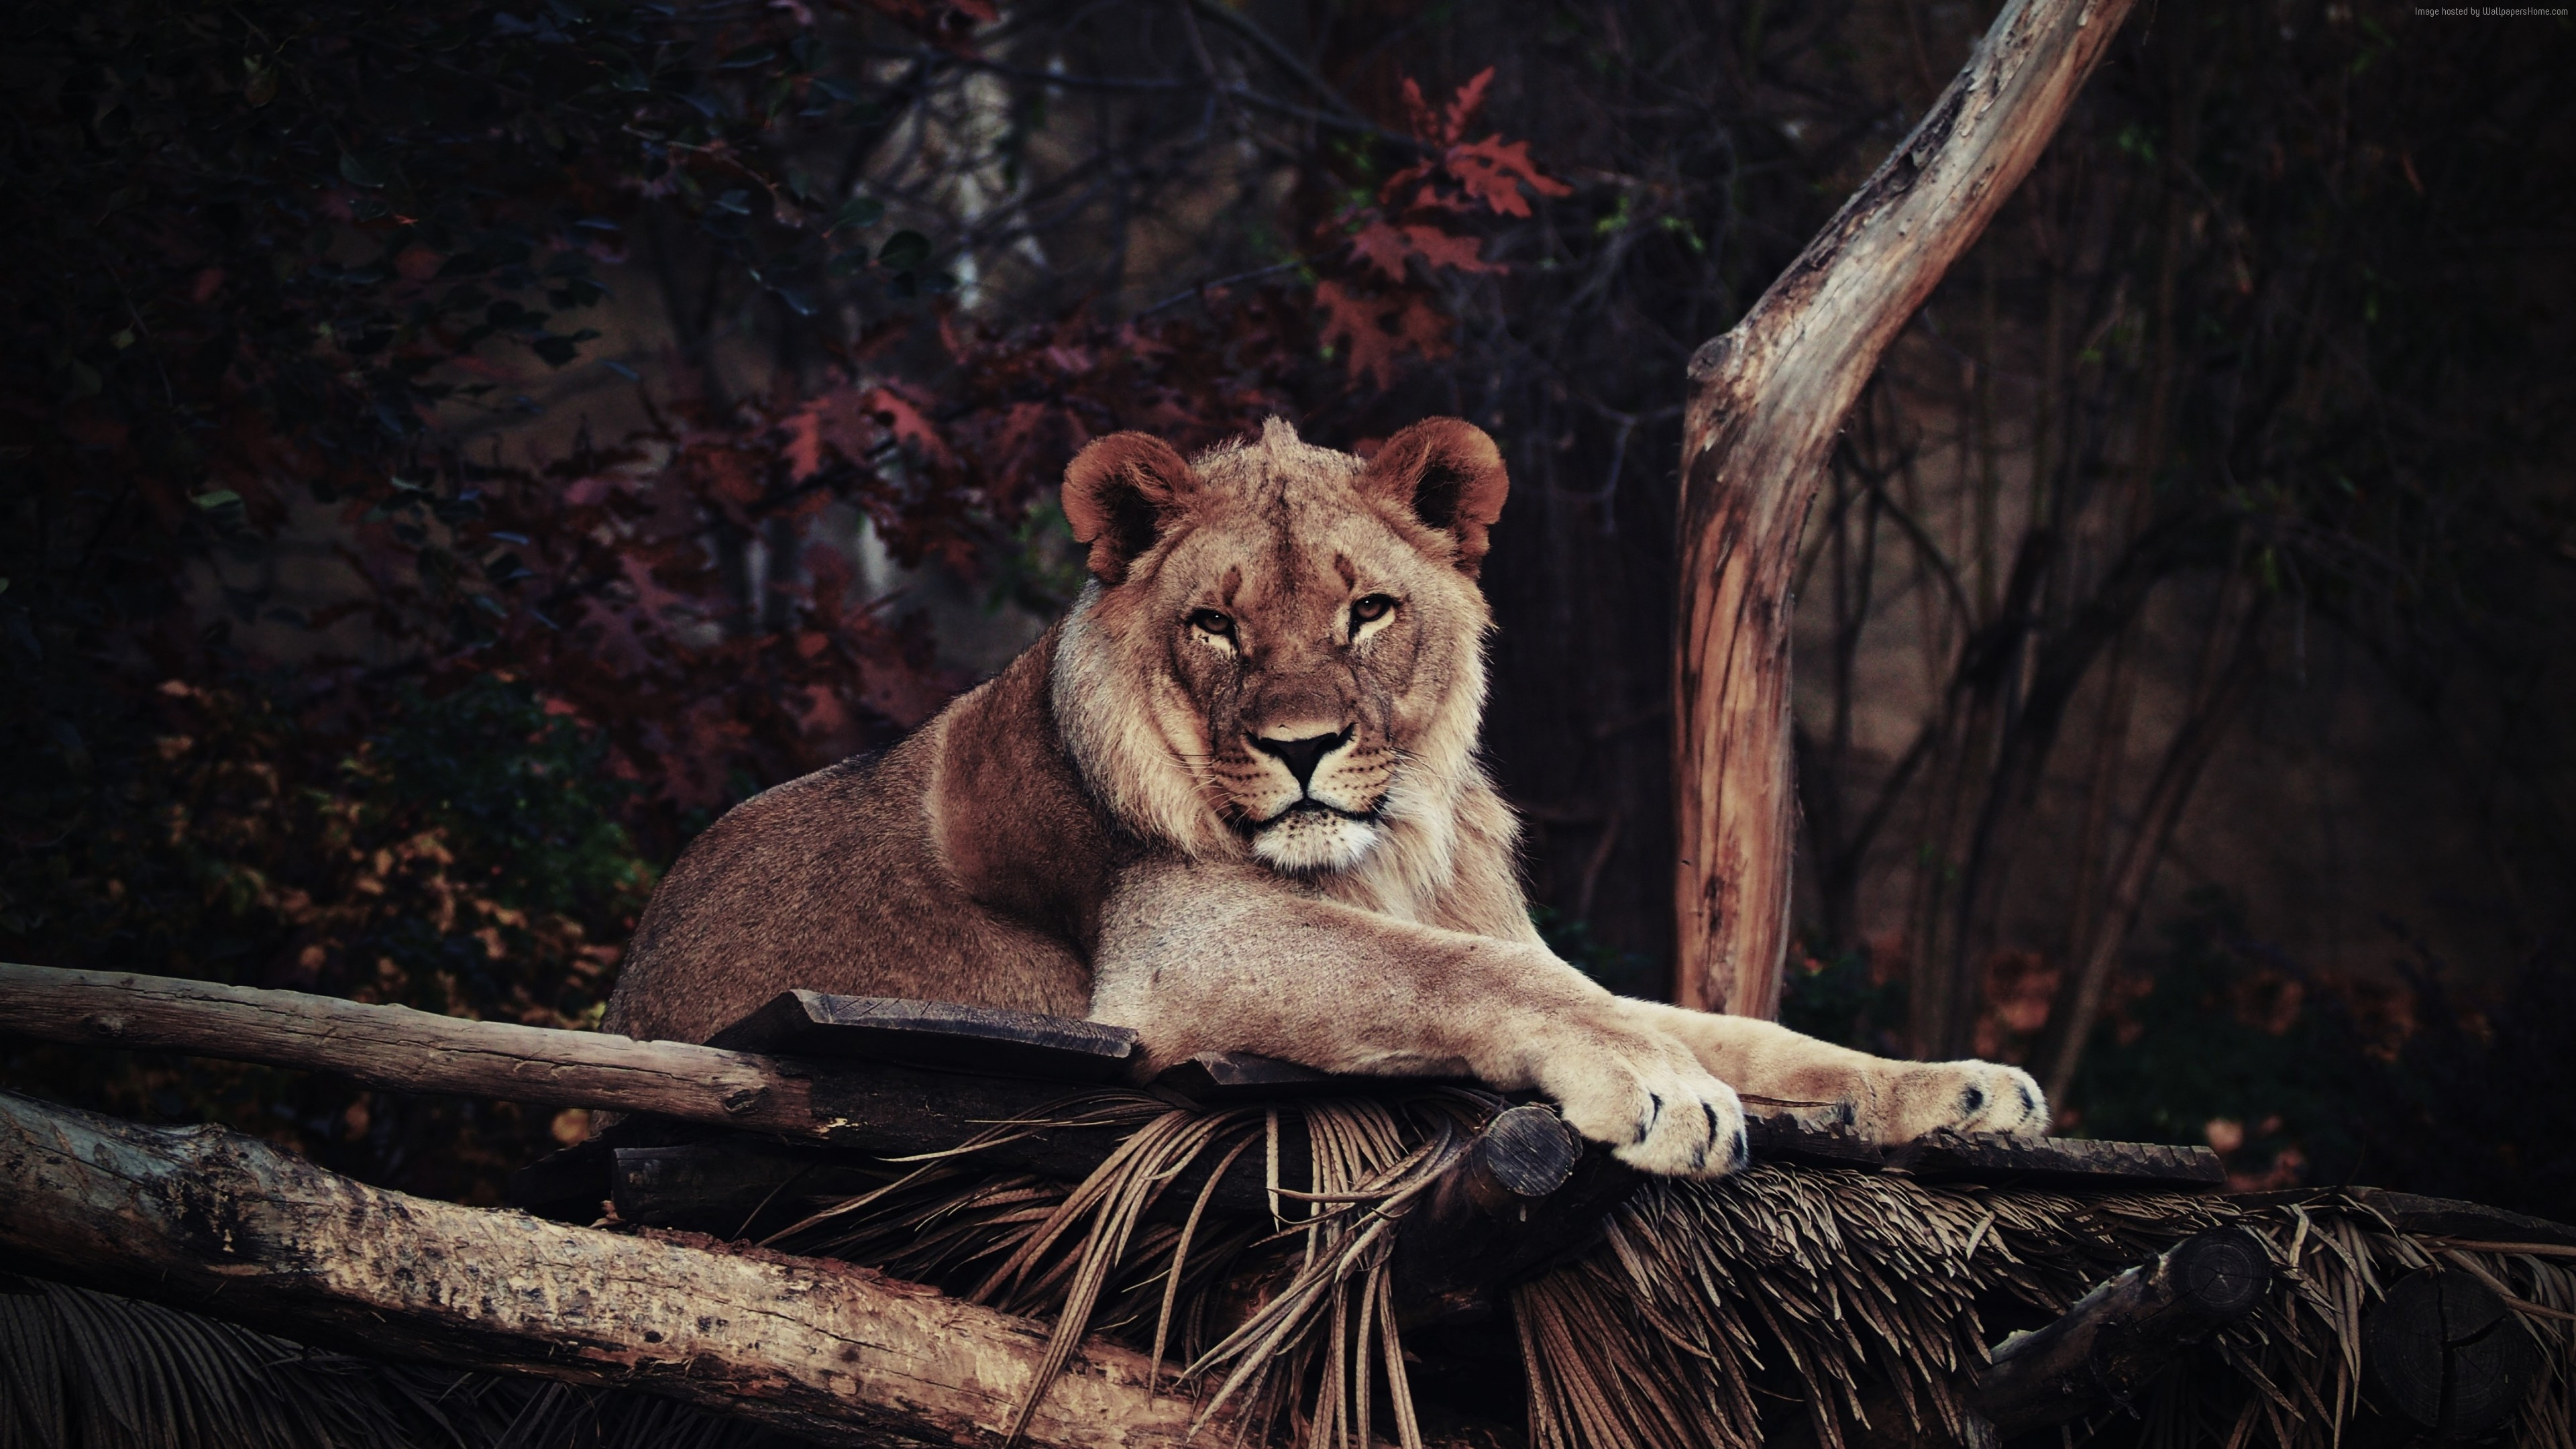 Stock Images lion, savanna, 5k, Stock Images